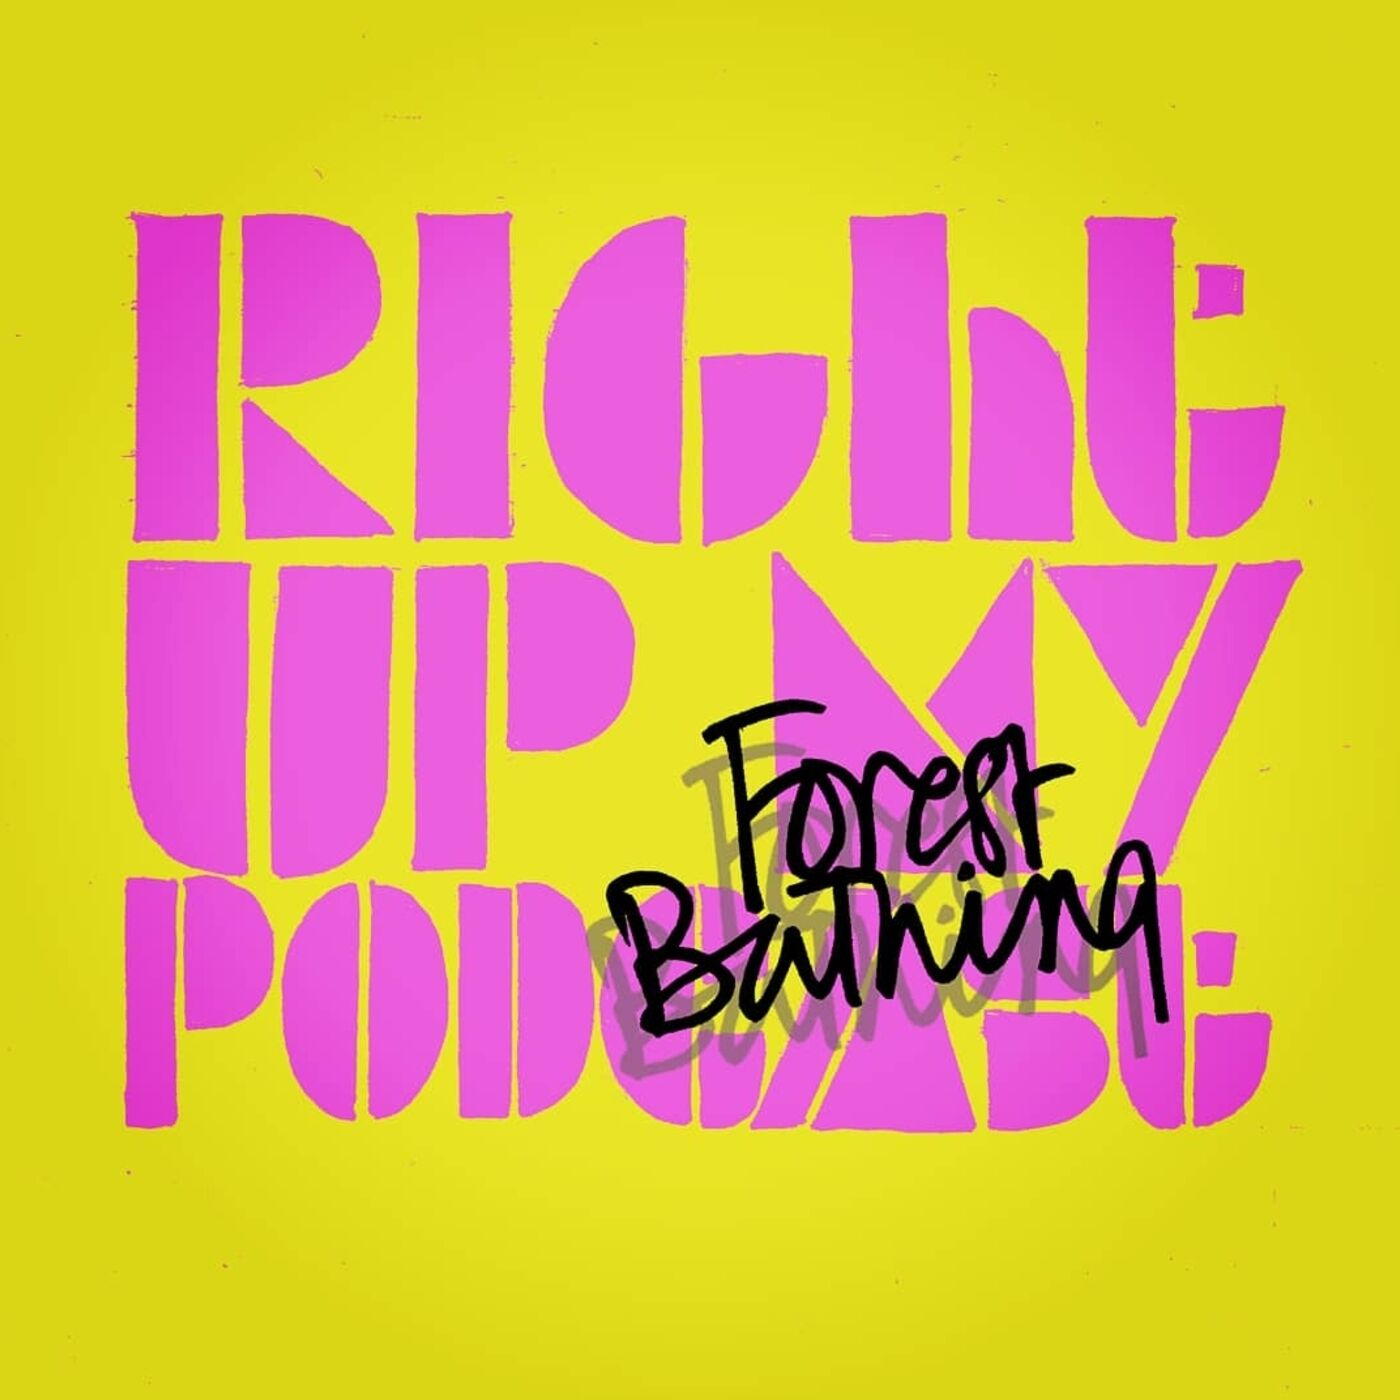 Ep.3 - Forest Bathing